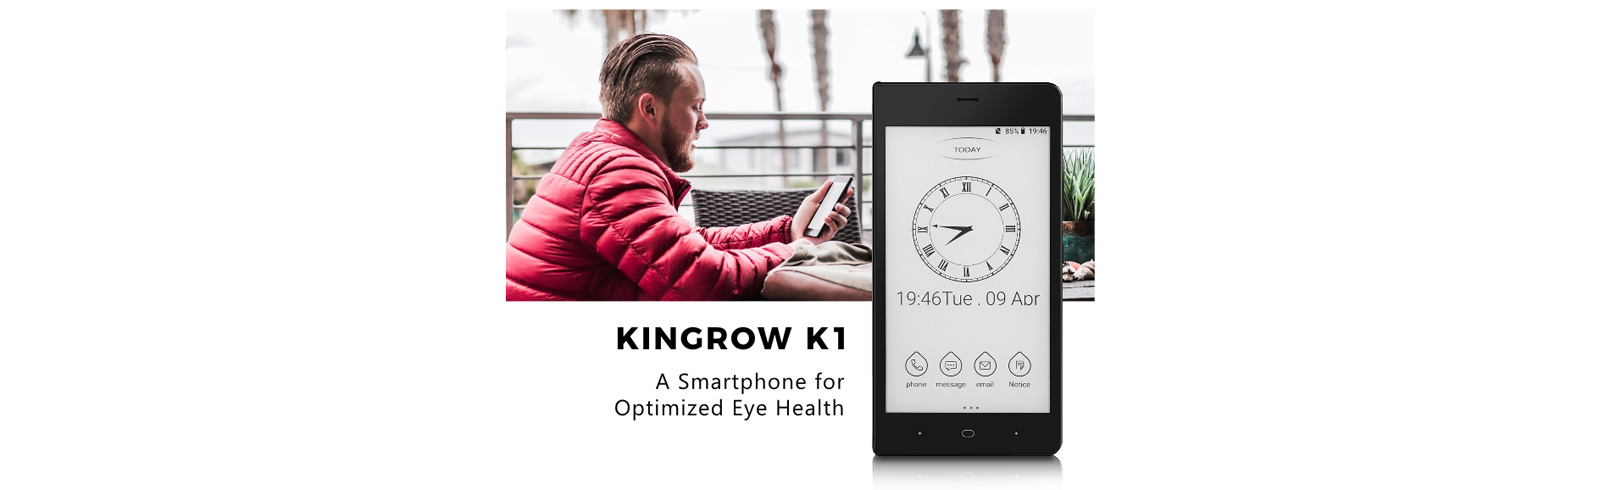 Kingrow K1 is a new crowd funded smartphone with an e-Ink display